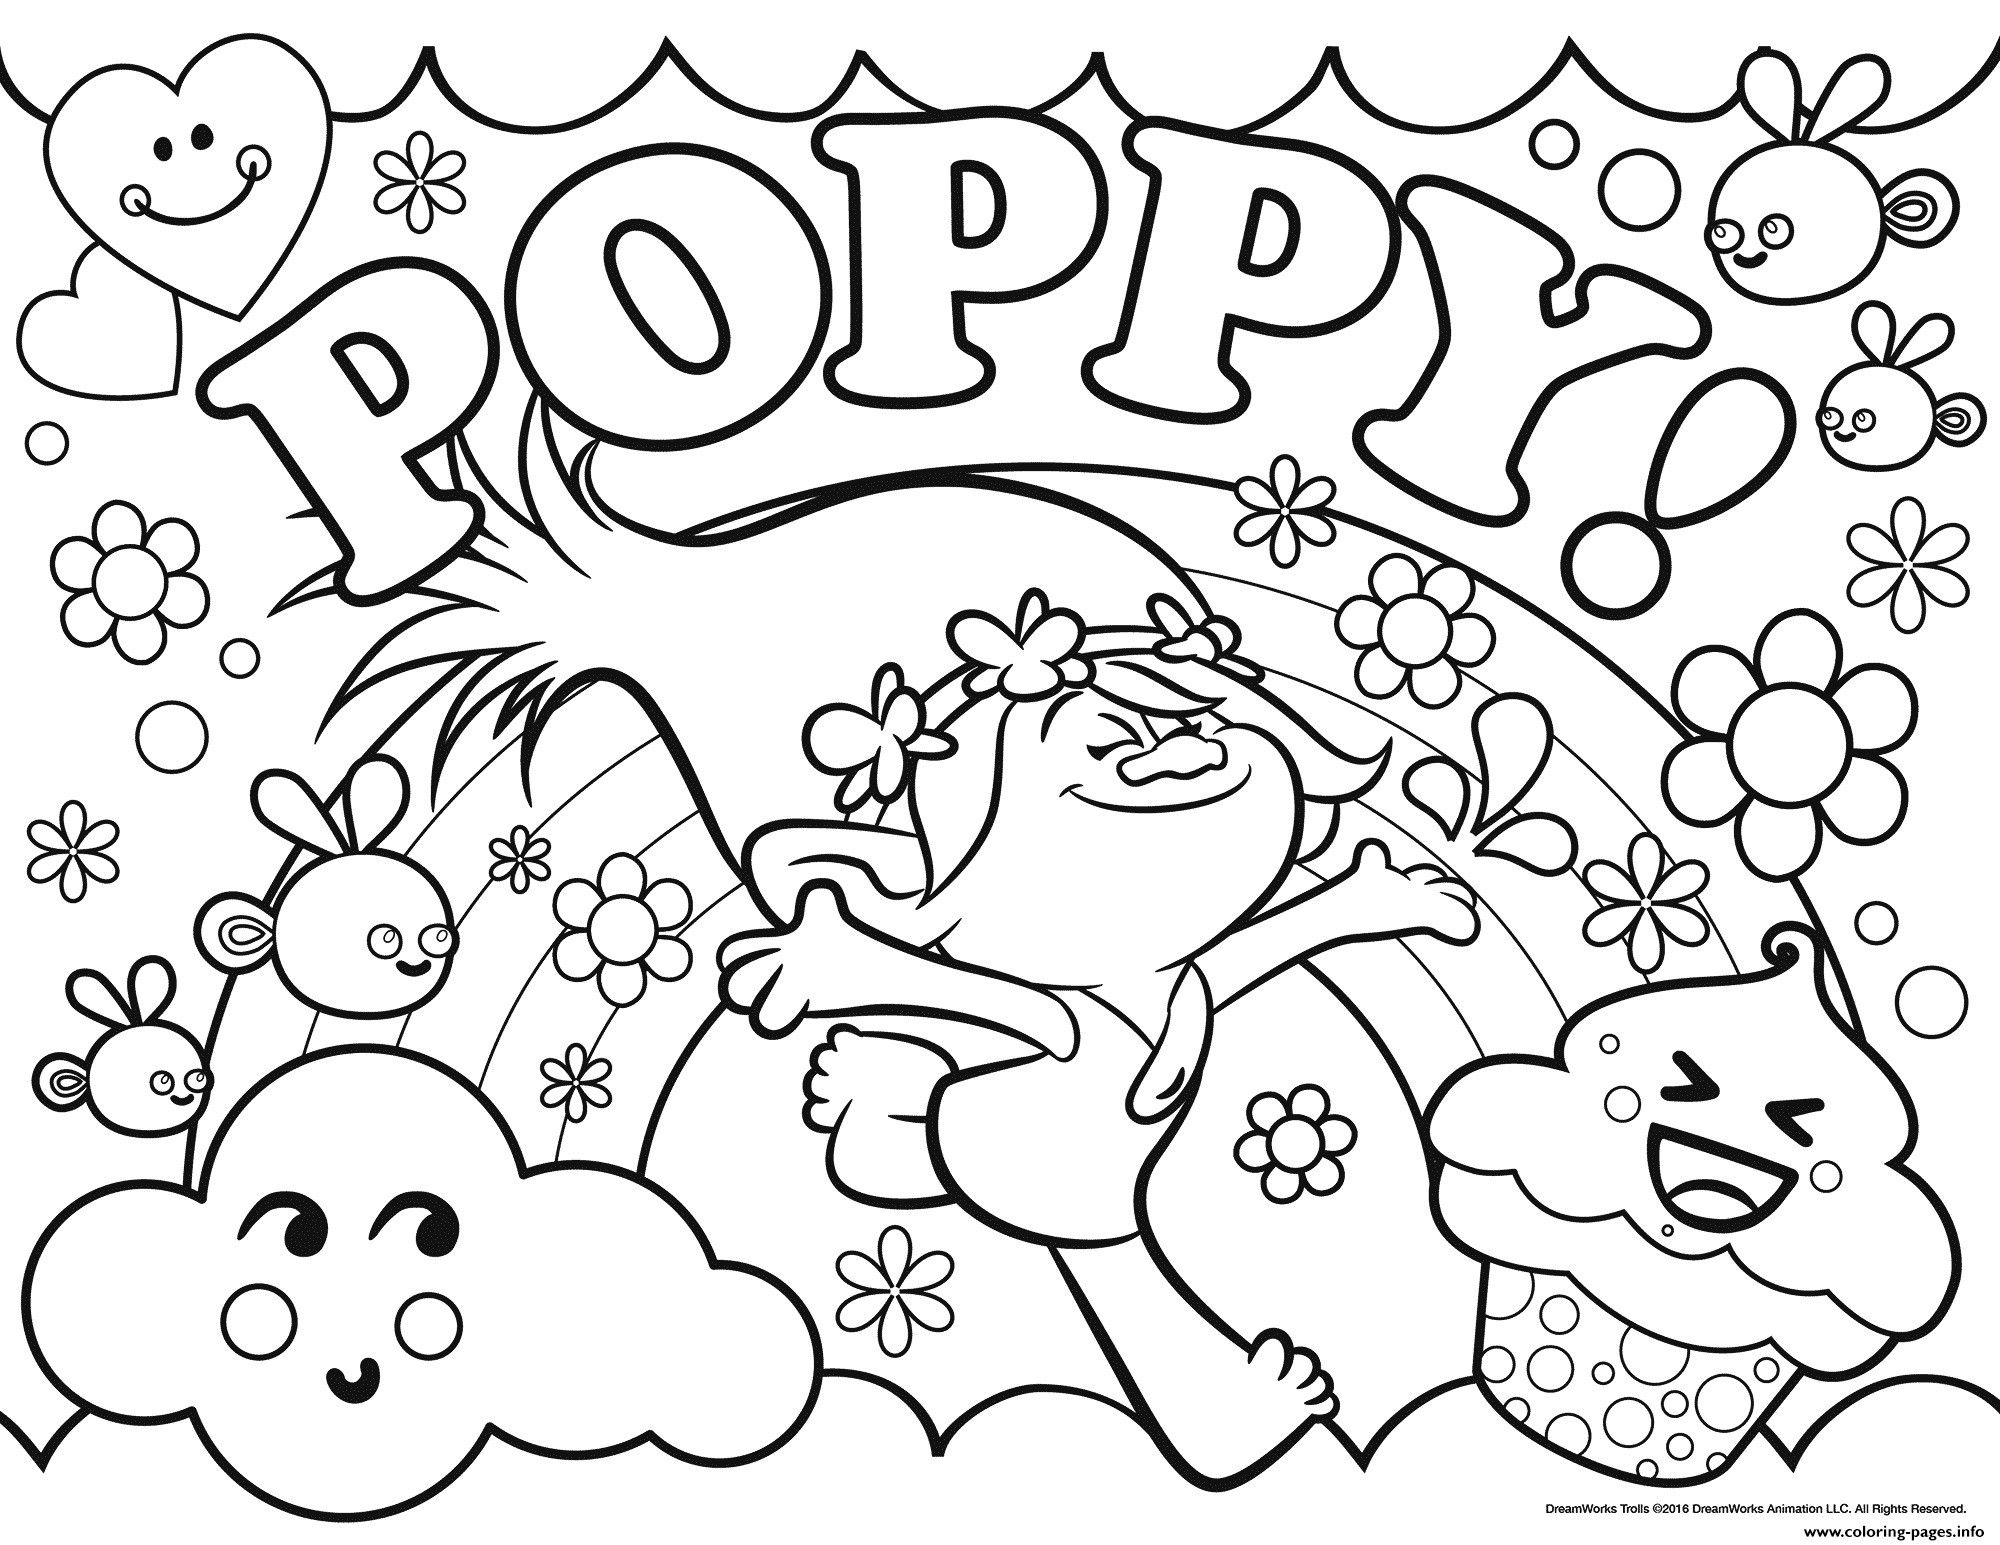 Trolls Coloring Book Pages Through The Thousand Photographs On The Internet In Relation To Trolls C Poppy Coloring Page Cartoon Coloring Pages Coloring Books